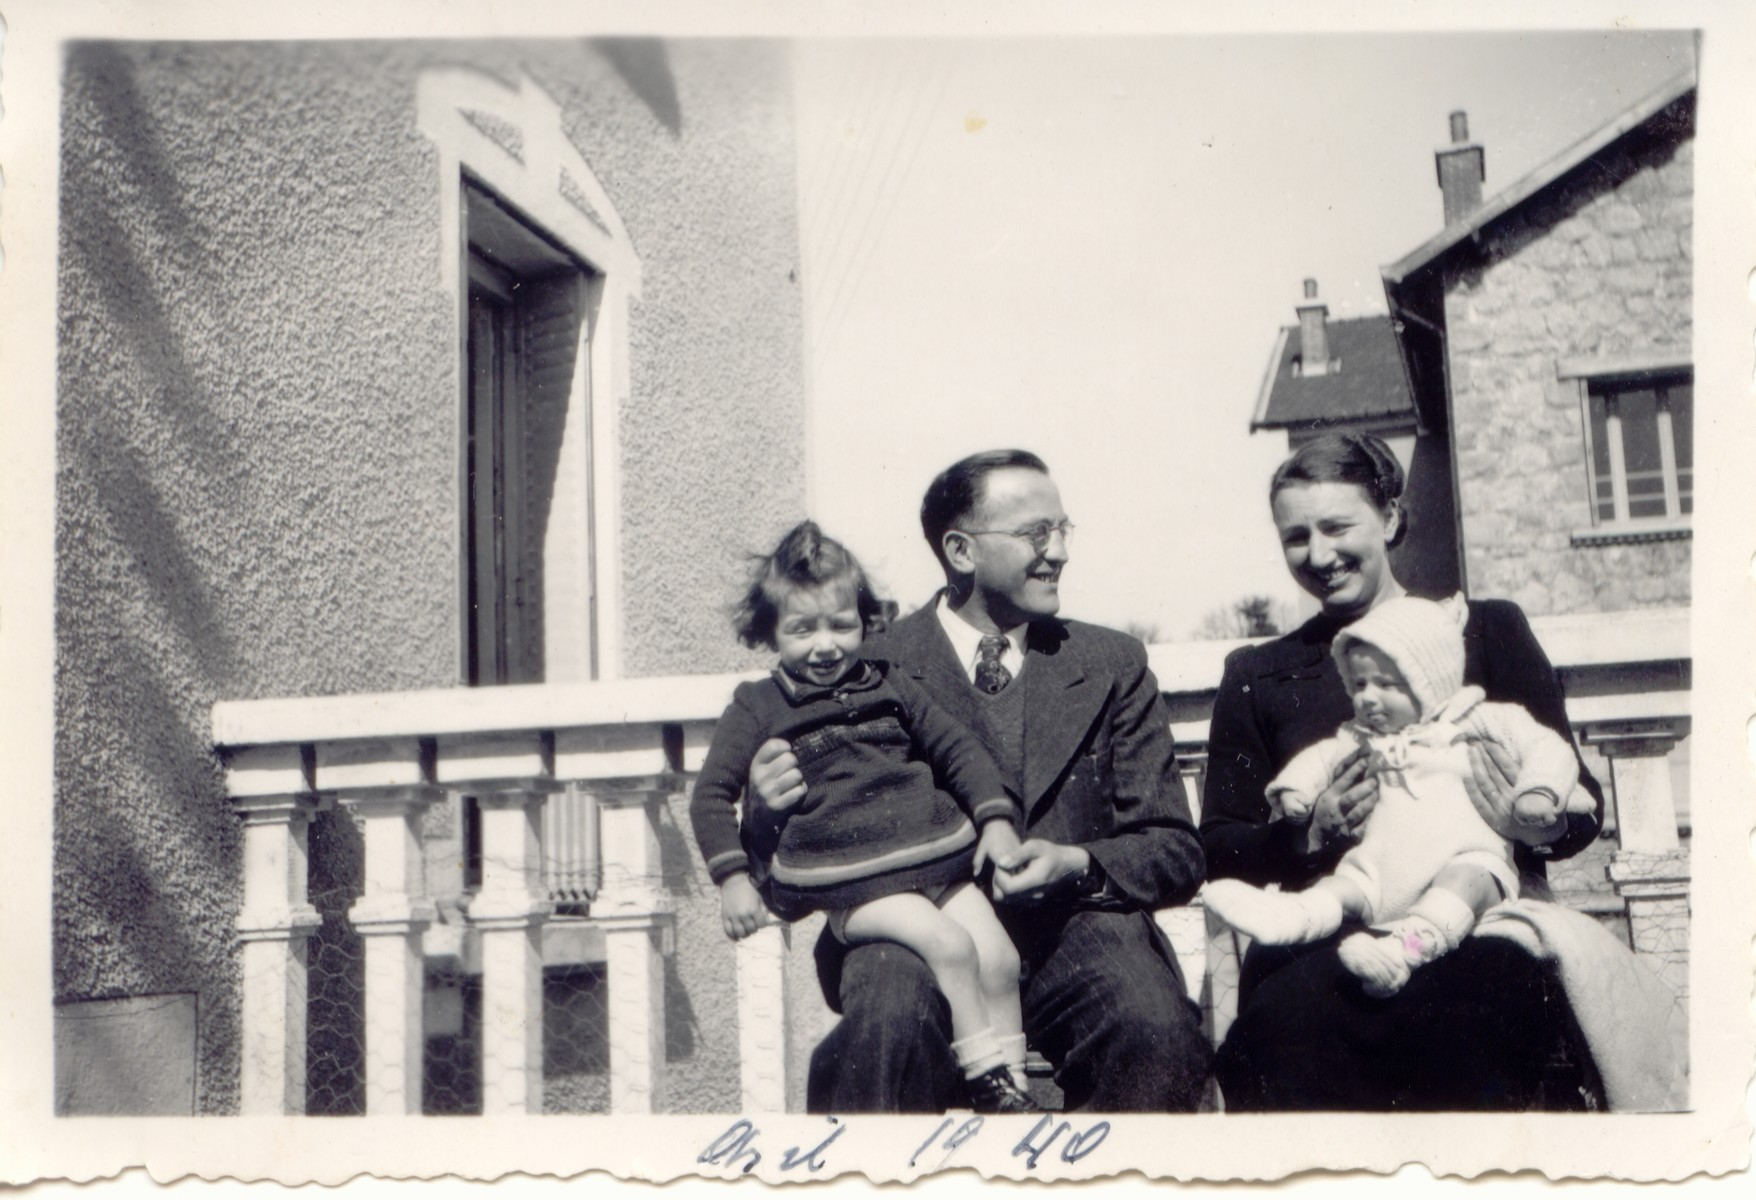 Rene and Germaine Brunschwig pose on a balcony holding their two young daughters, Arlette and Silvie, on their laps.